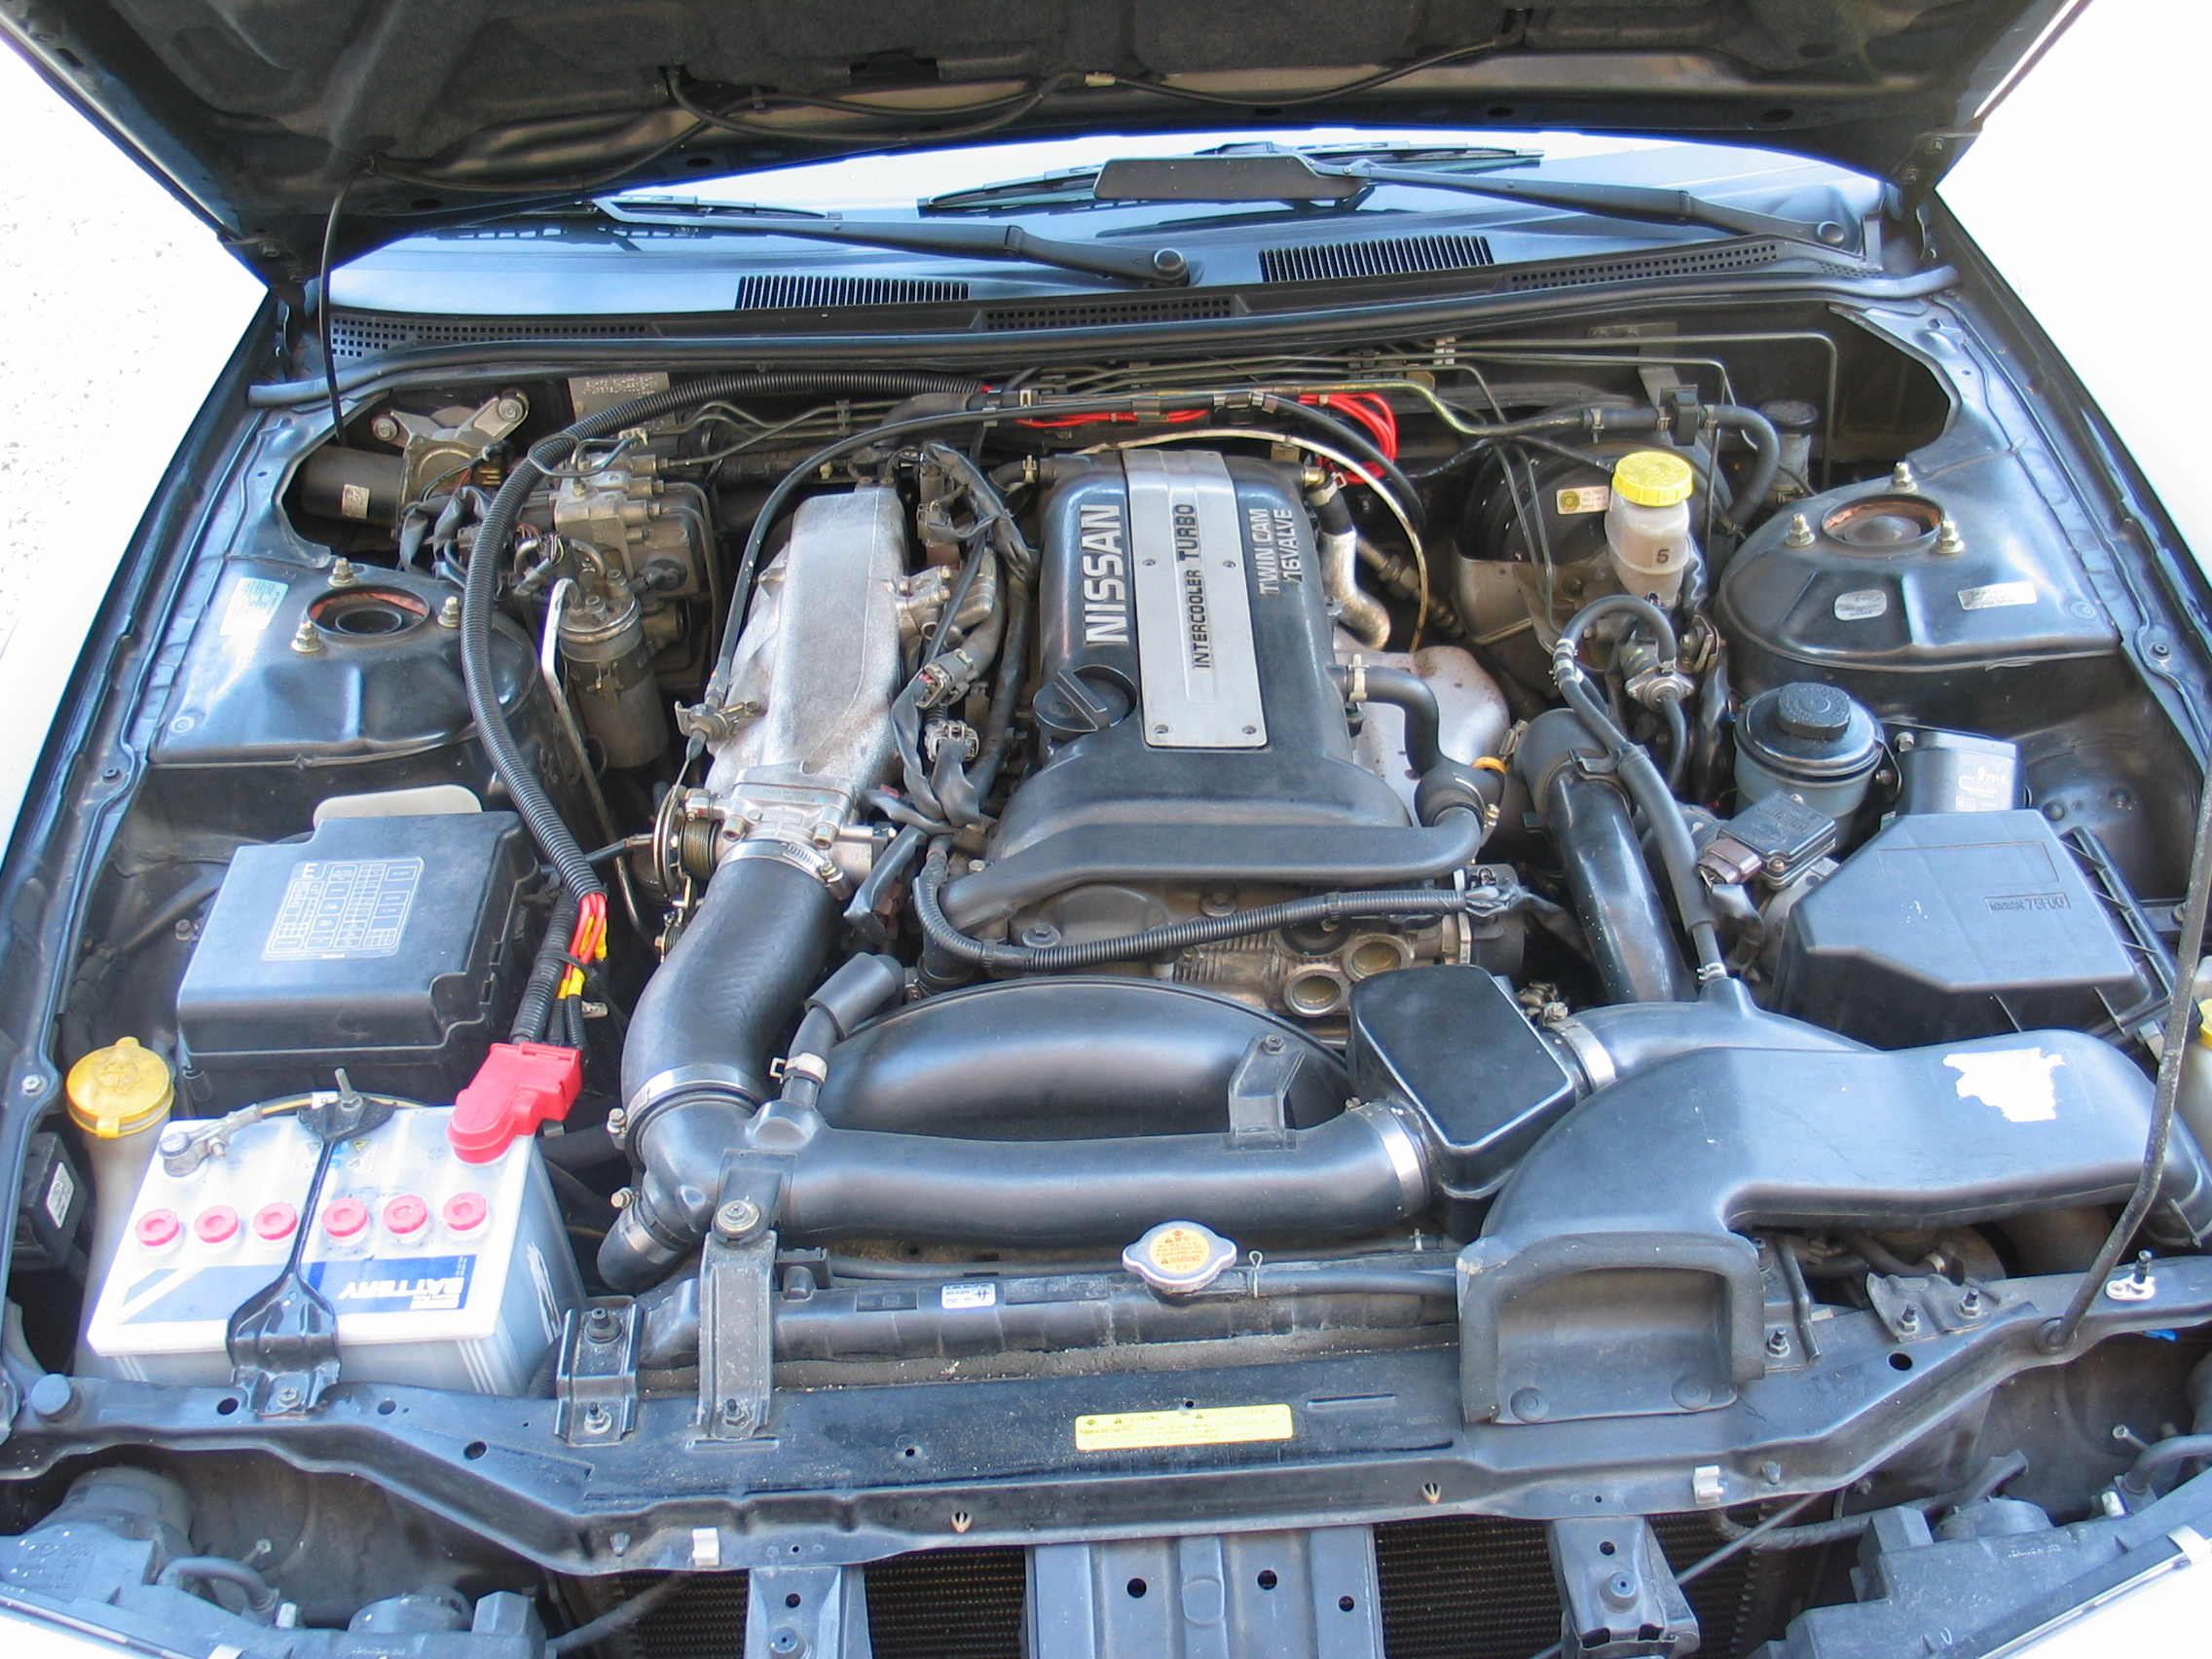 File Nissan 200SX S14a Engine Bay Stock likewise RepairGuideContent likewise Hardcore Mercedes Benz G Class W461 Professional Discontinued Photo Gallery 73897 in addition 1987 Toyota Cressida Engine Diagram as well Sensor Next Coolant Temp Sensor 90 22re What 248340. on 1985 toyota supra wiring diagram